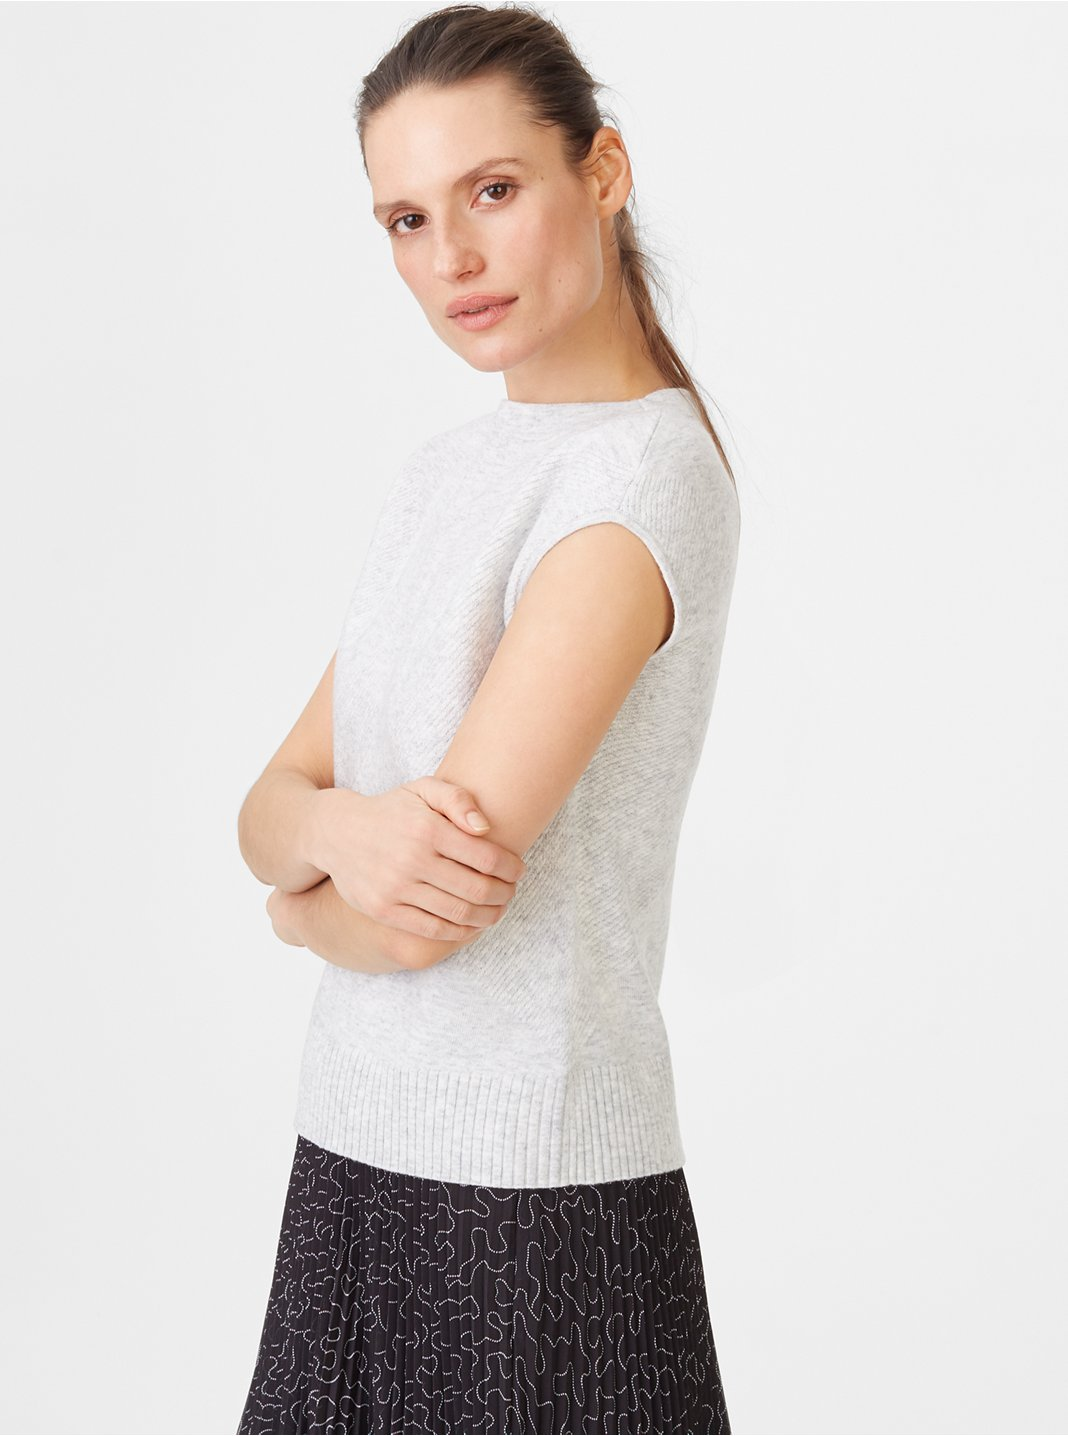 Fretta Sweater